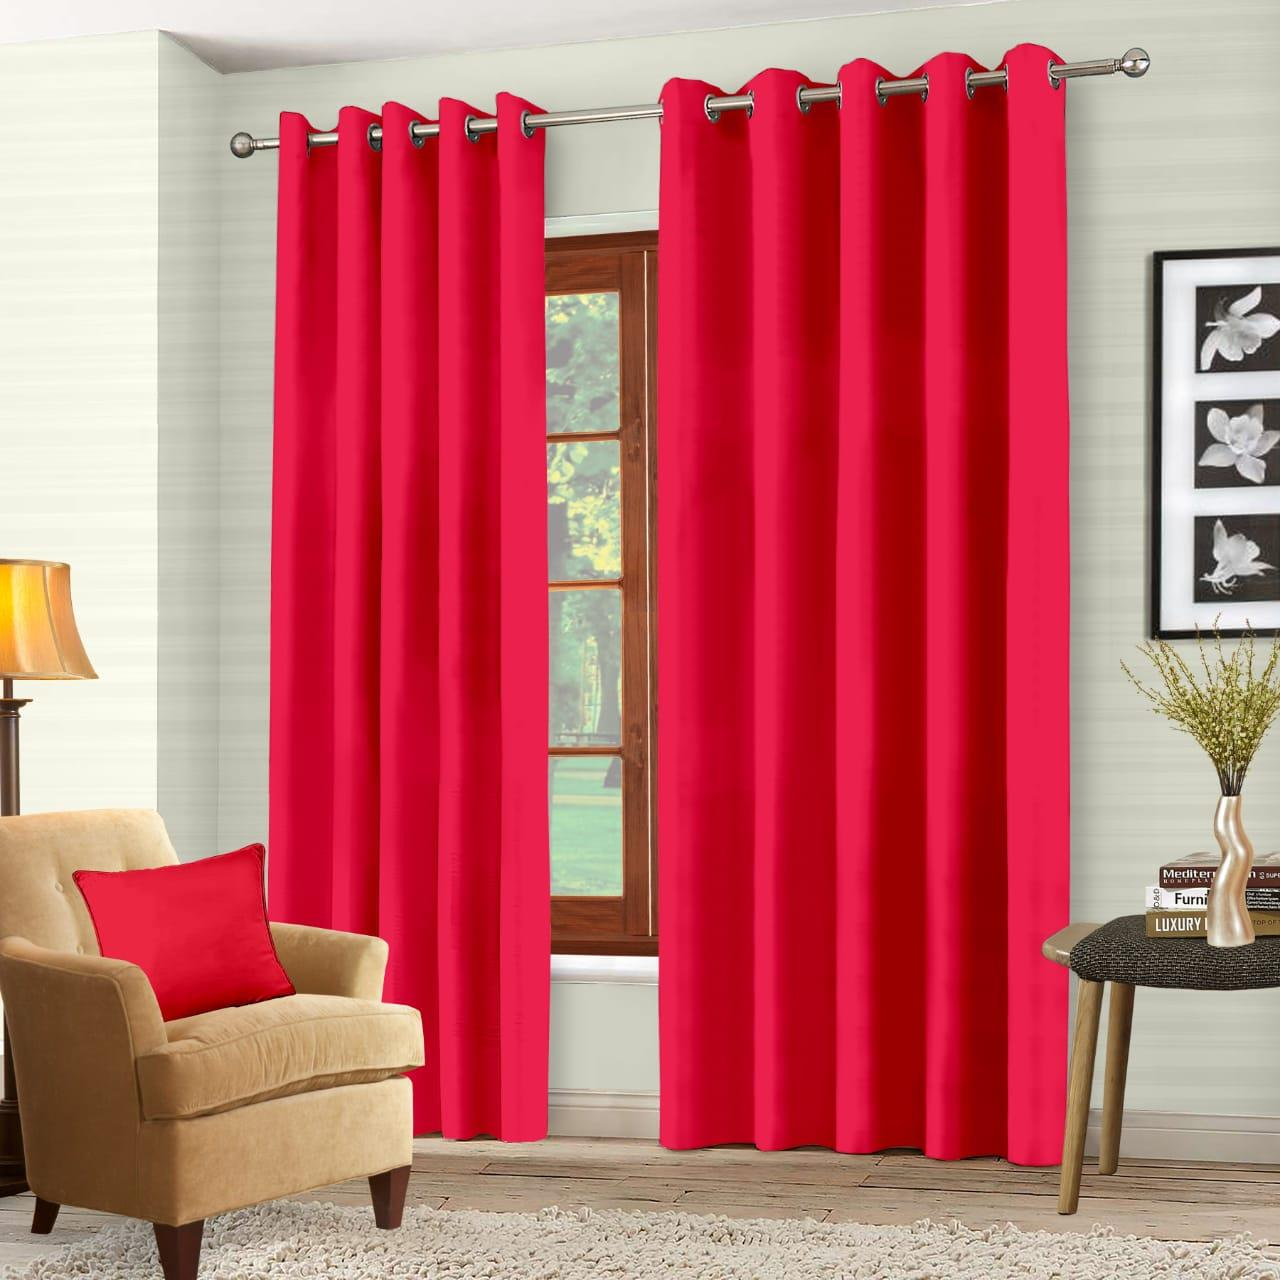 Luxury-Thermal-Blackout-Eyelet-Ring-Top-Curtains-Pair-with-tie-backs thumbnail 37